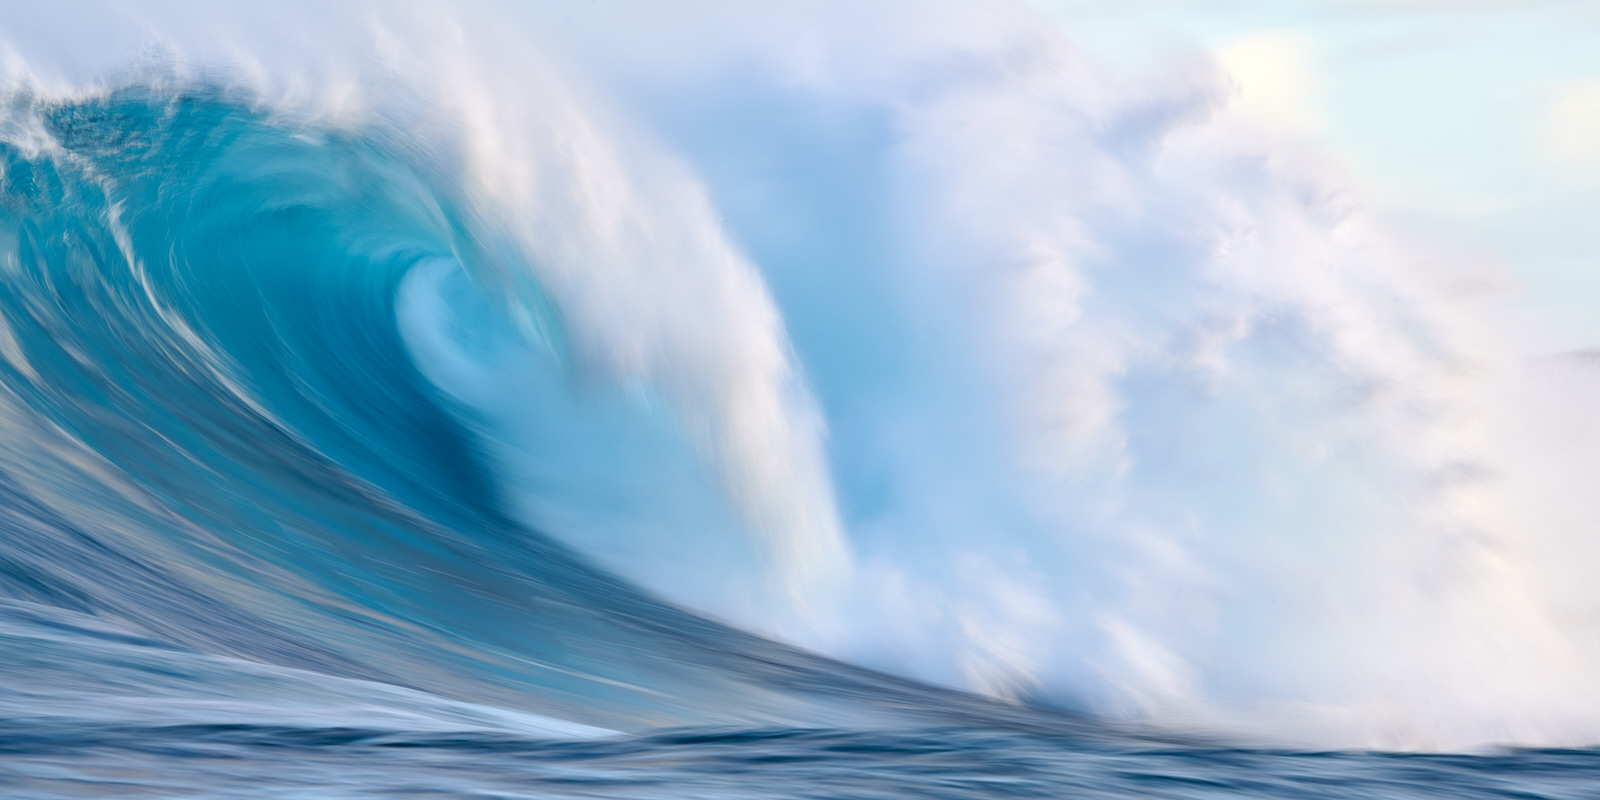 a slow motion capture of the largest wave in Hawaii Peahi or also known as Jaws.